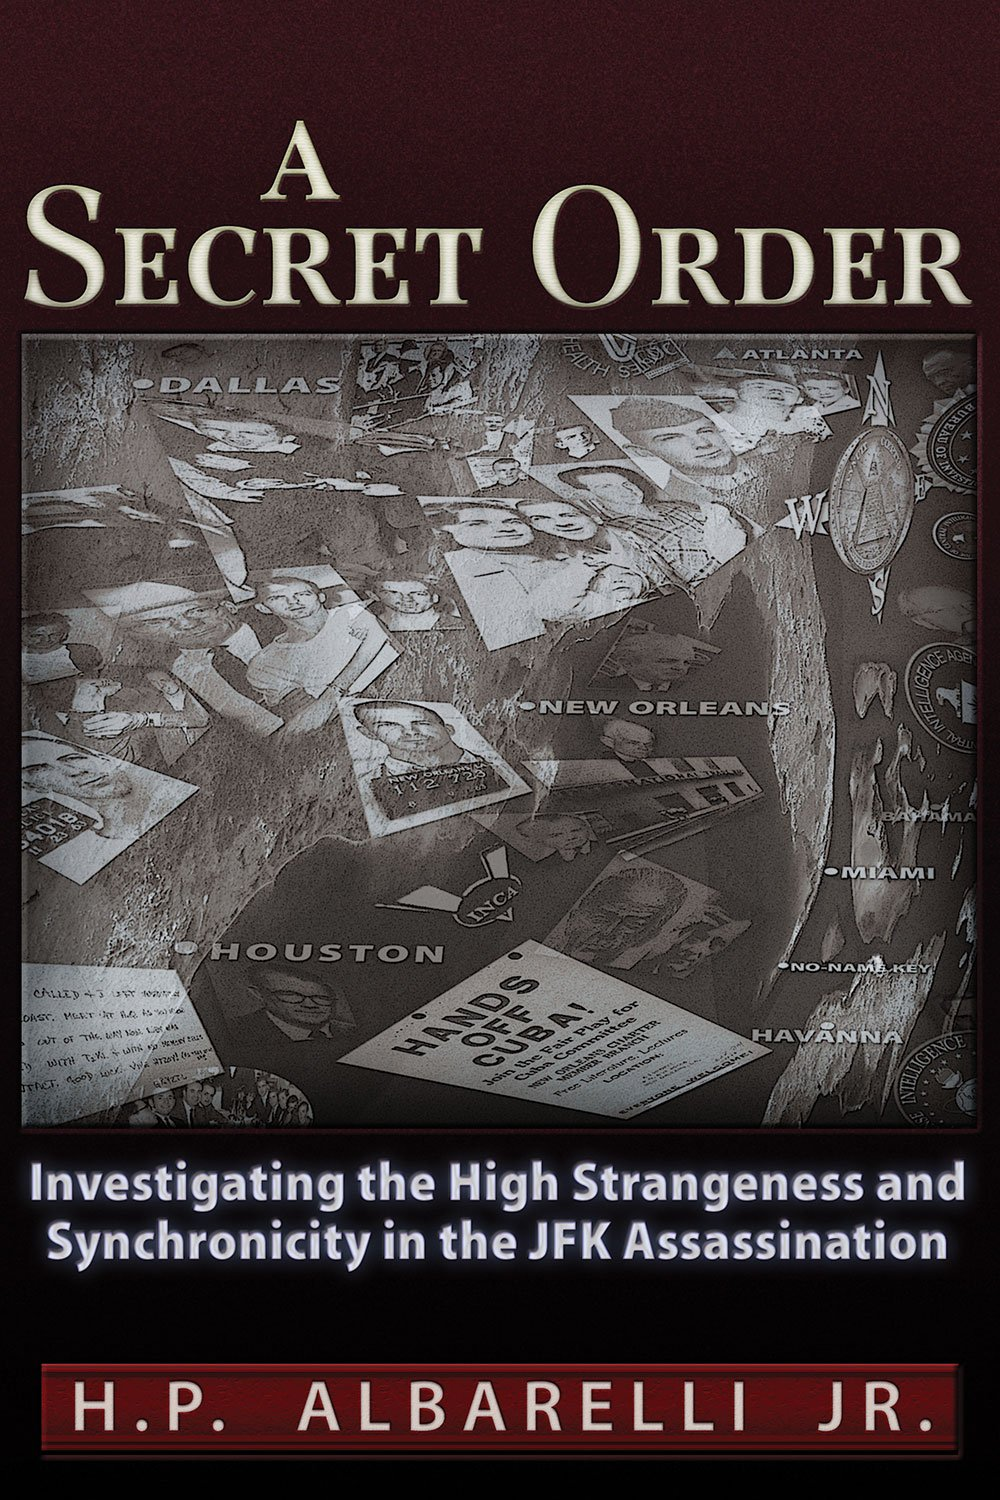 A Secret Order: Investigating the High Strangeness and Synchronicity in the JFK Assassination PDF